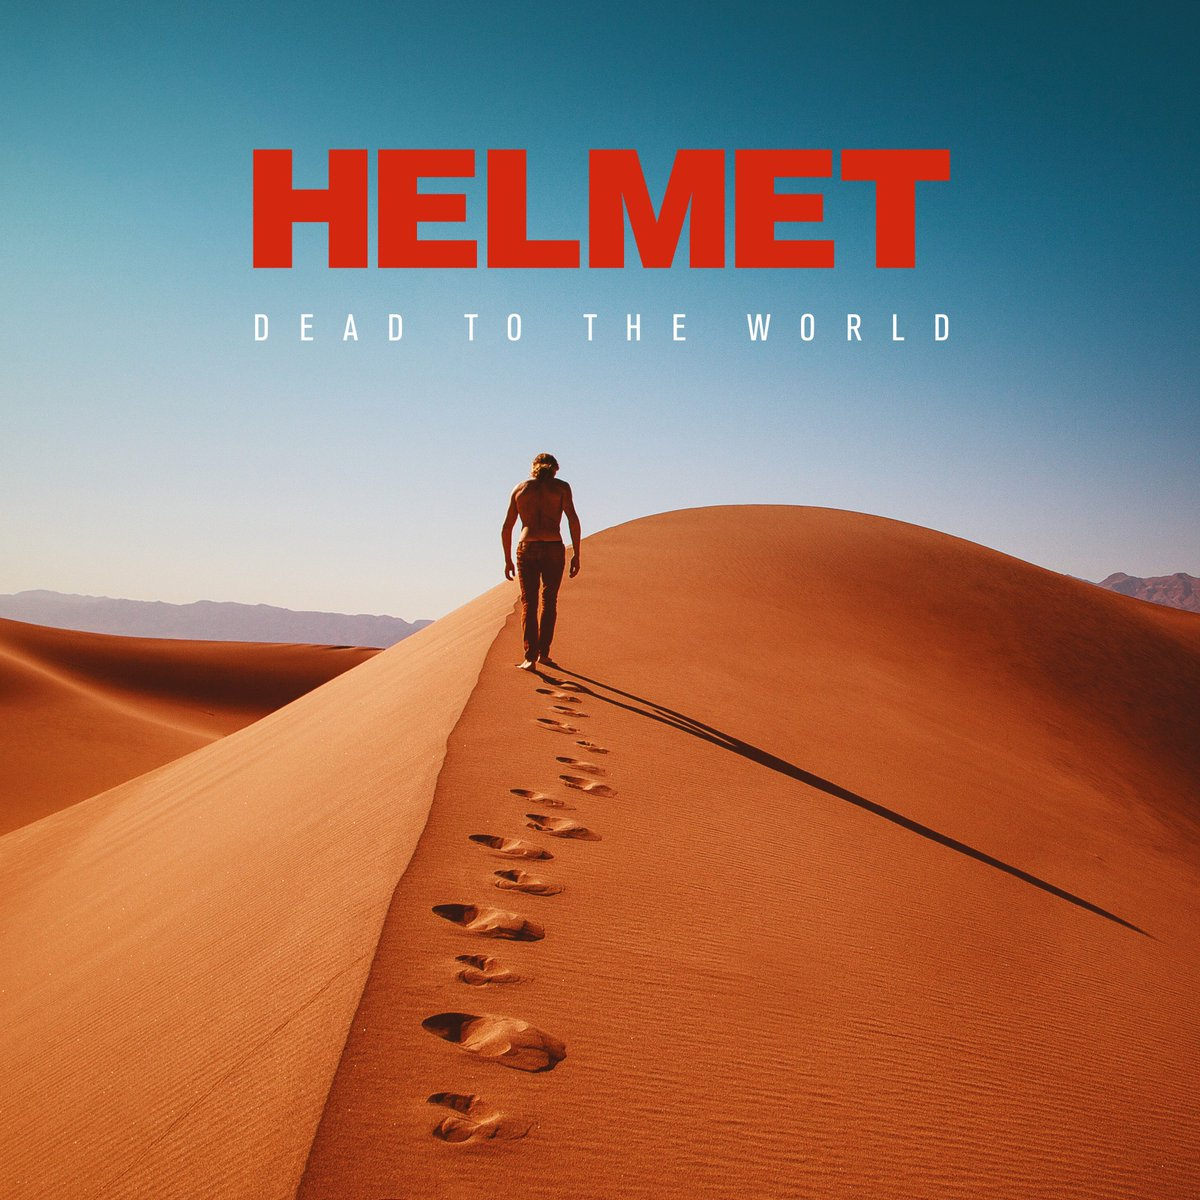 Helmet : Dead To The World